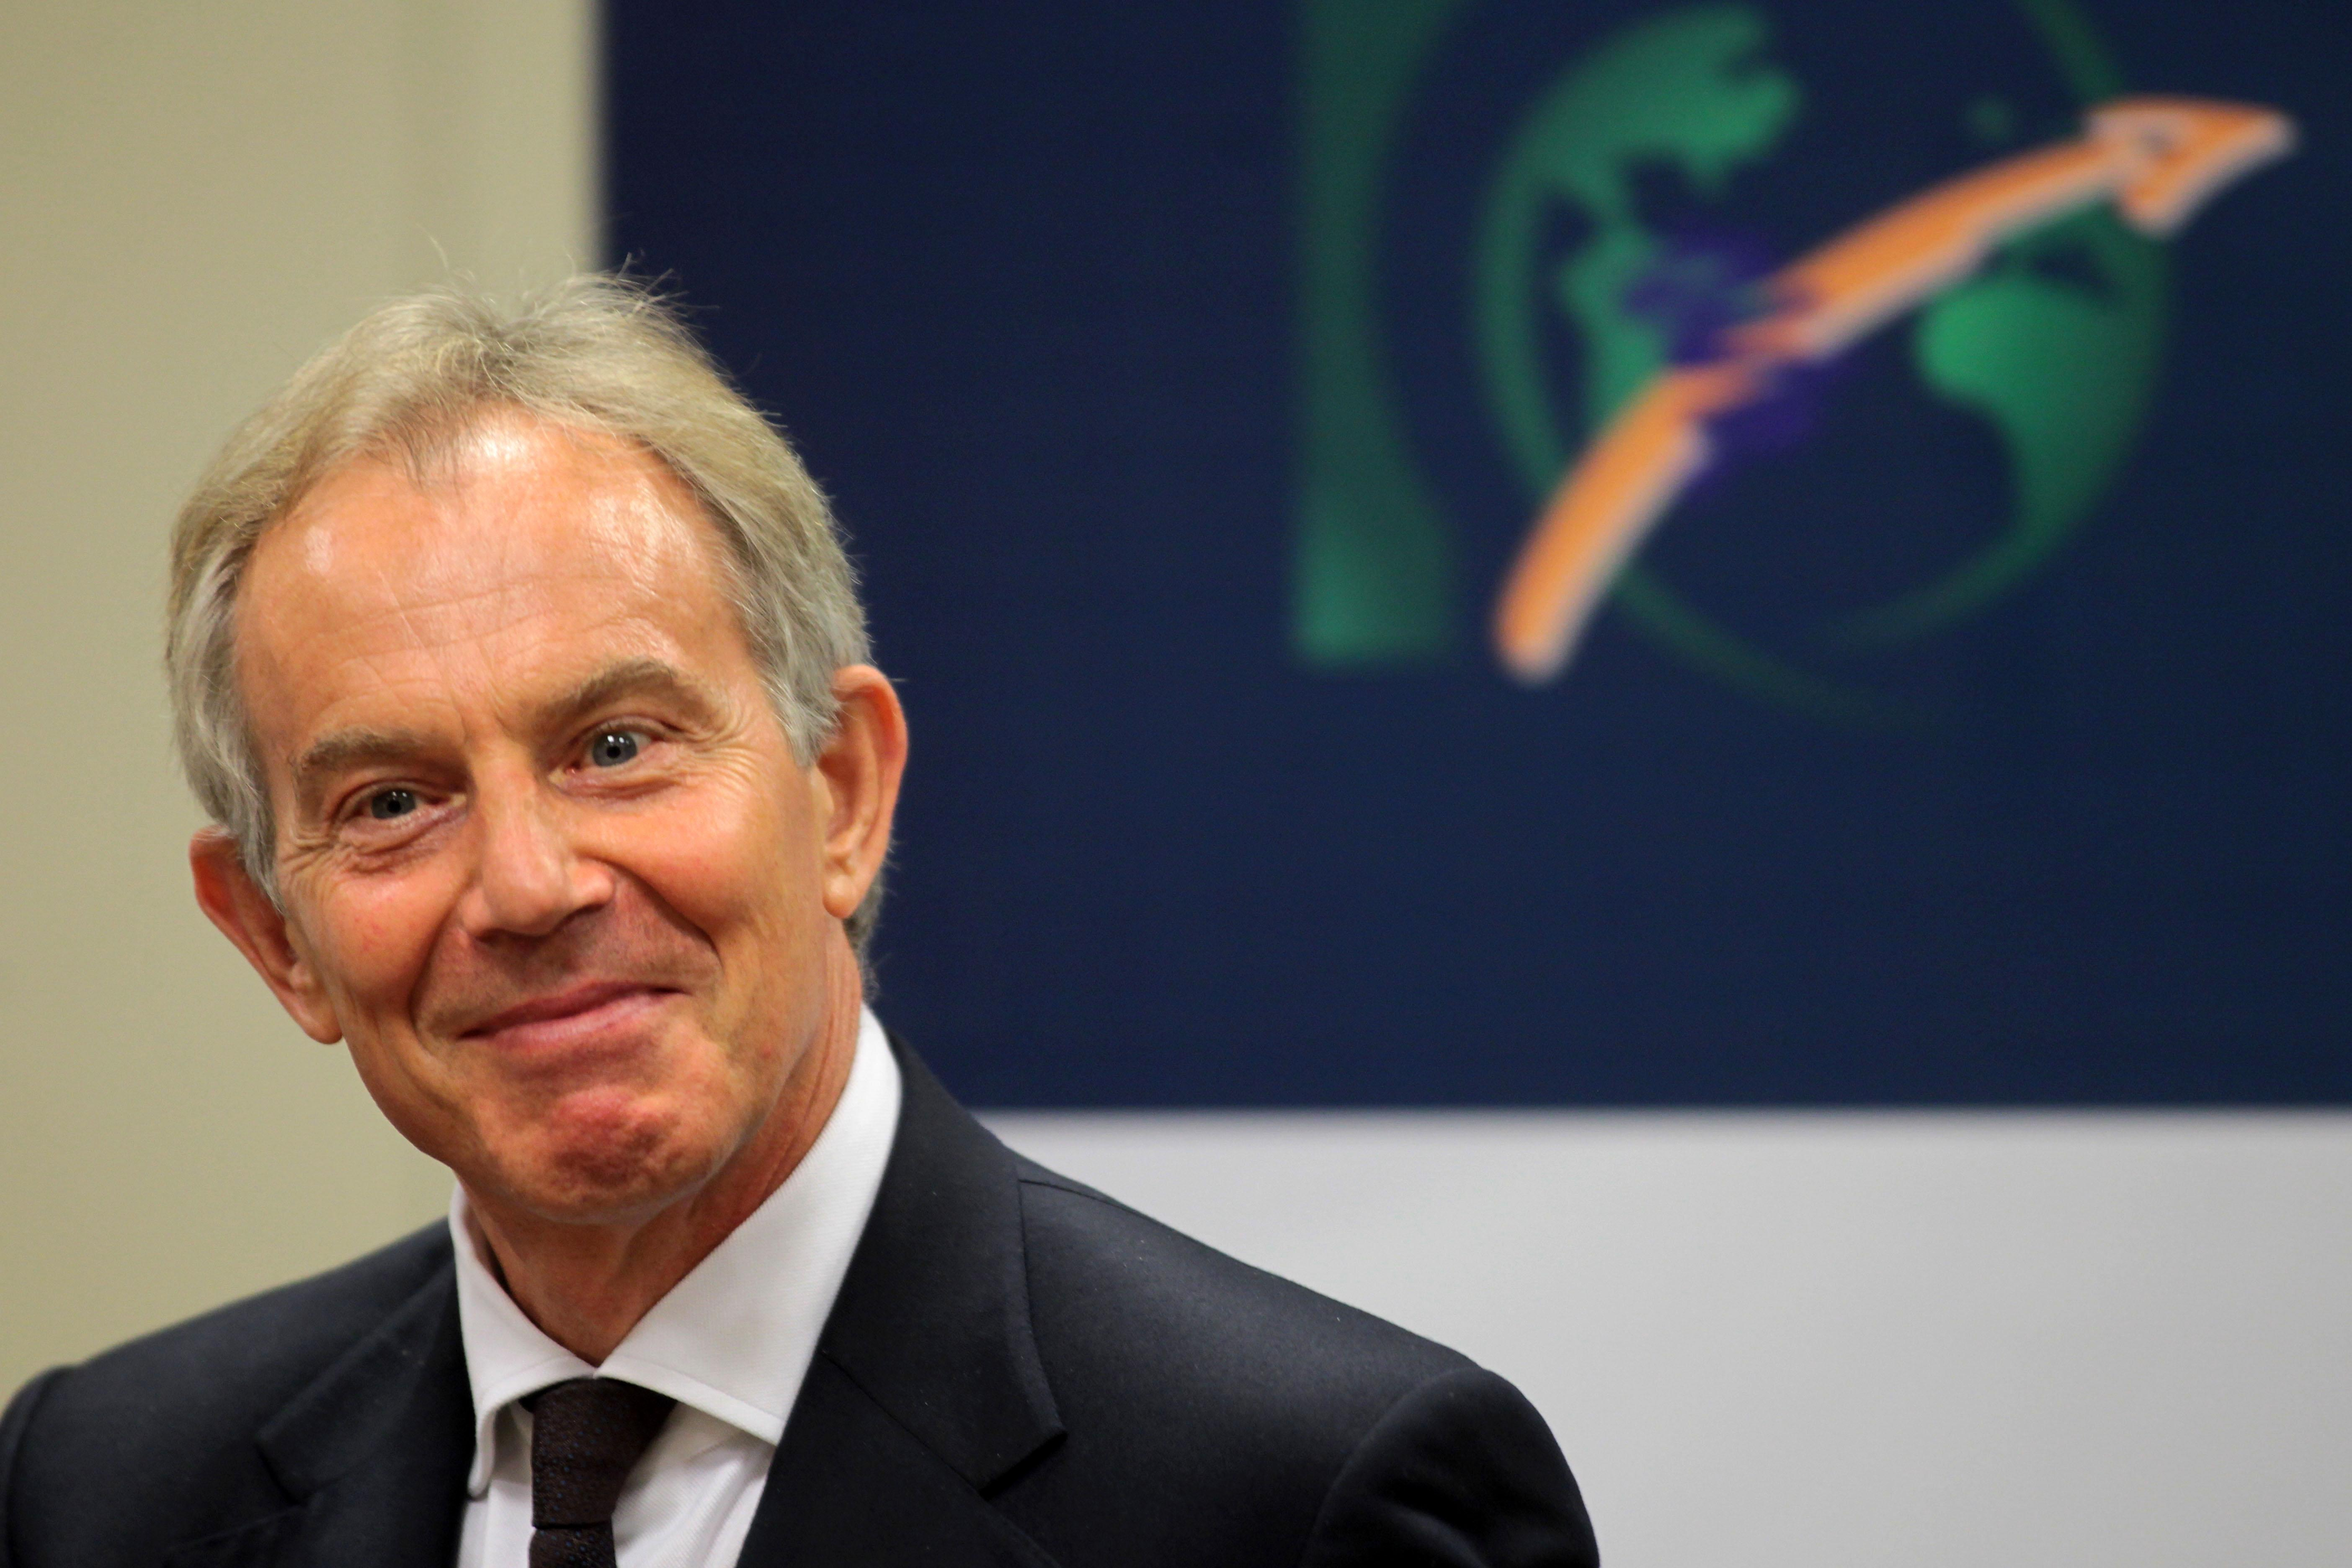 Former British Prime Minister Tony Blair smiles as he delivers a speech during a meeting of the Competitive Brazil Movement, MBC, in Brasilia, Brazil, Tuesday, Aug. 28, 2012. (AP Photo/Eraldo Peres)